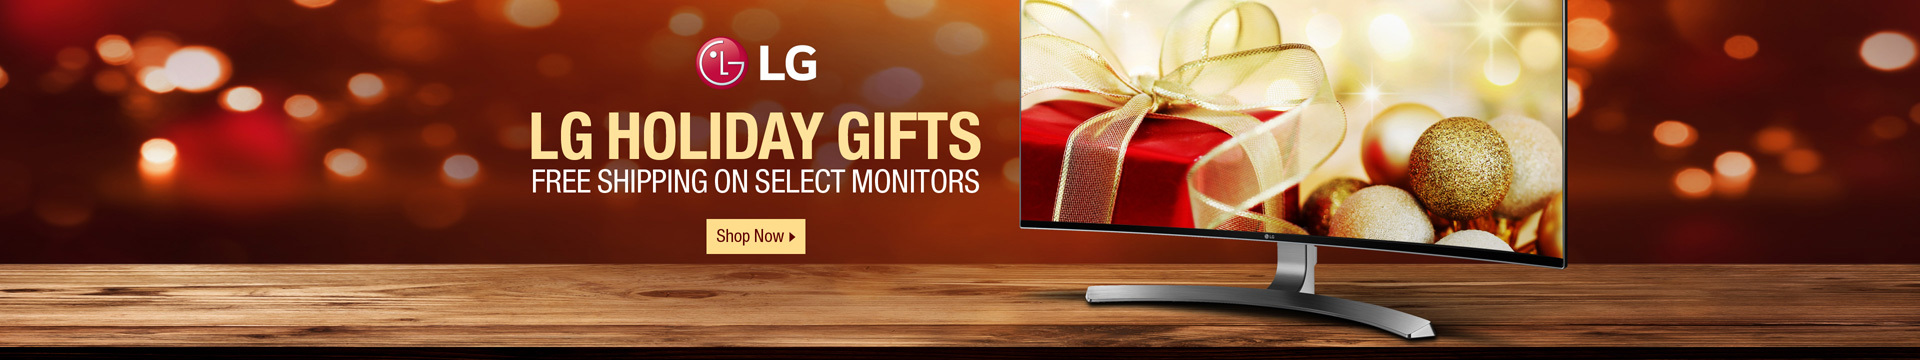 LG HOLIDAY GIFTS